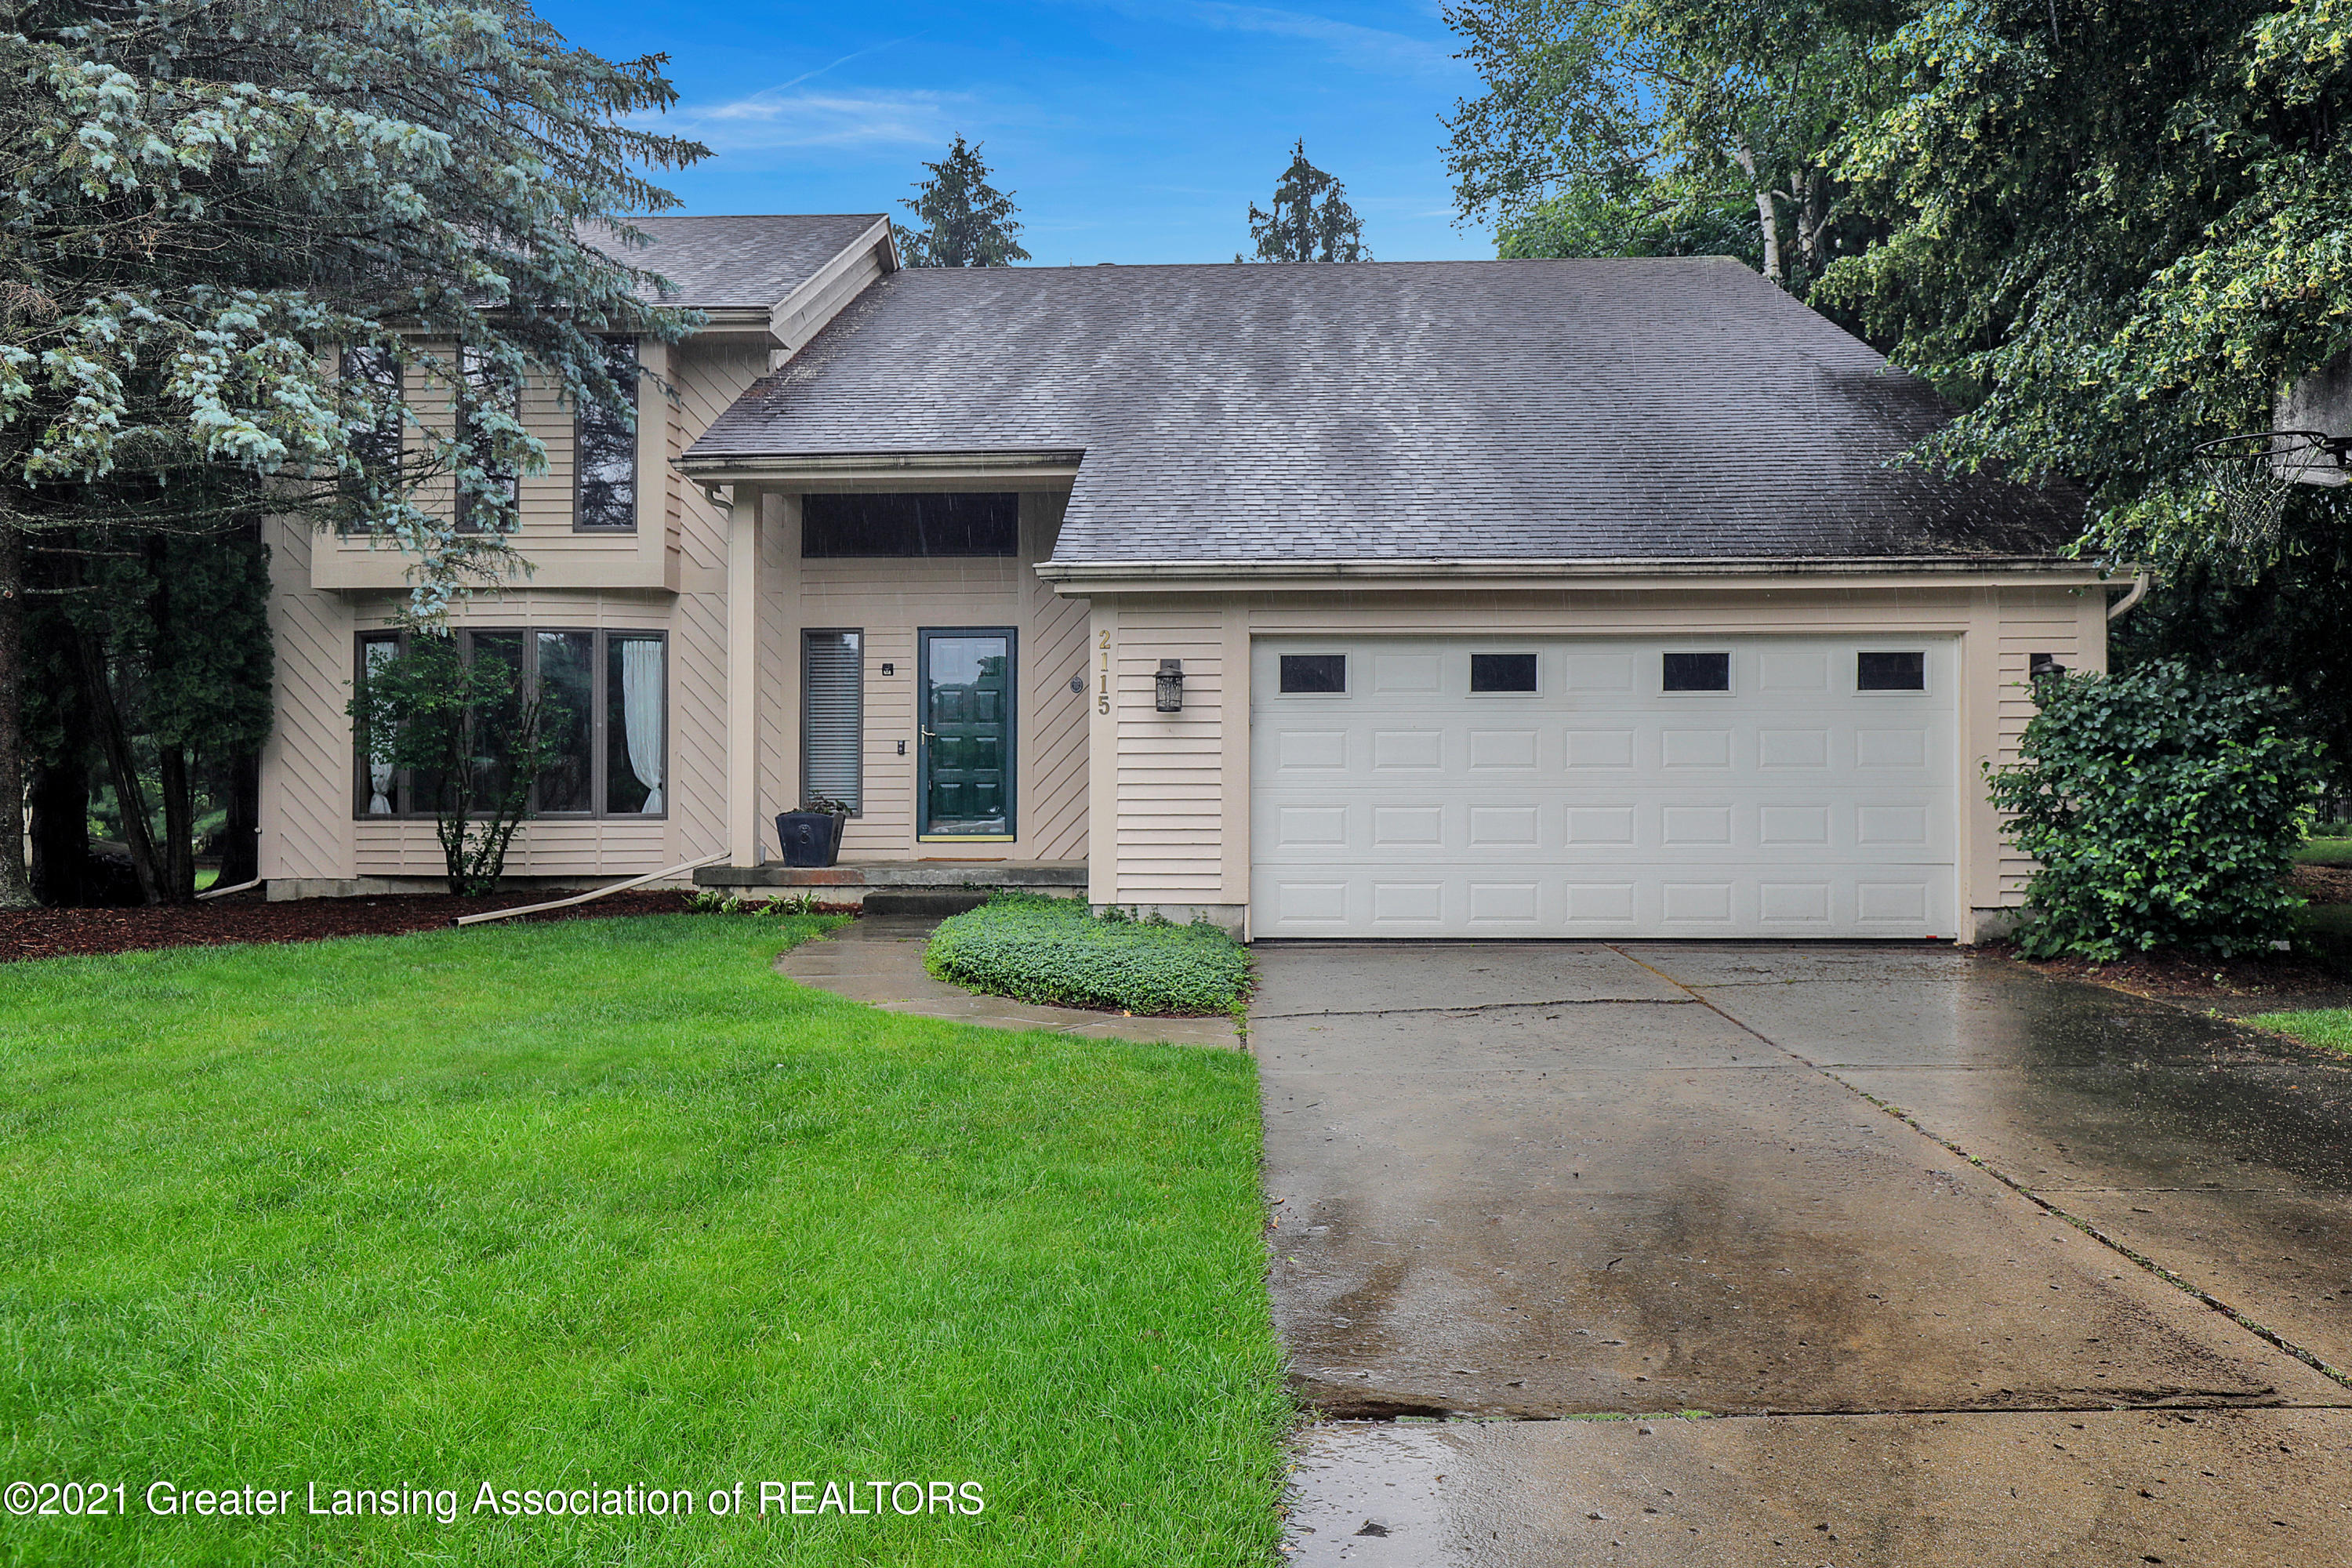 2115 Woodfield Rd - 9I3A0900 - 1